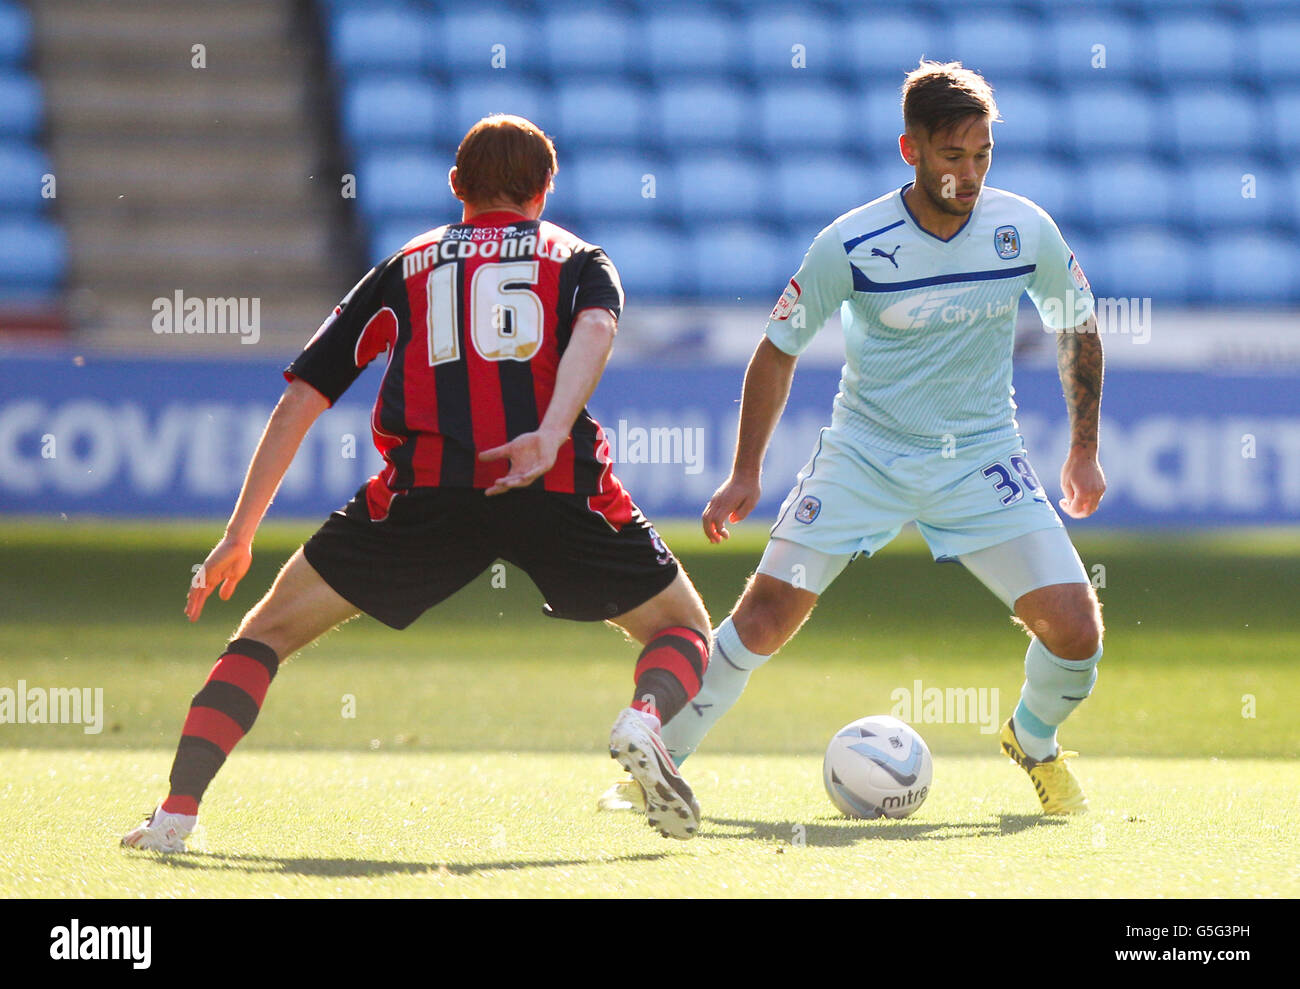 Soccer - npower Football League Championship - Coventry City v Bournemouth - Ricoh Arena - Stock Image